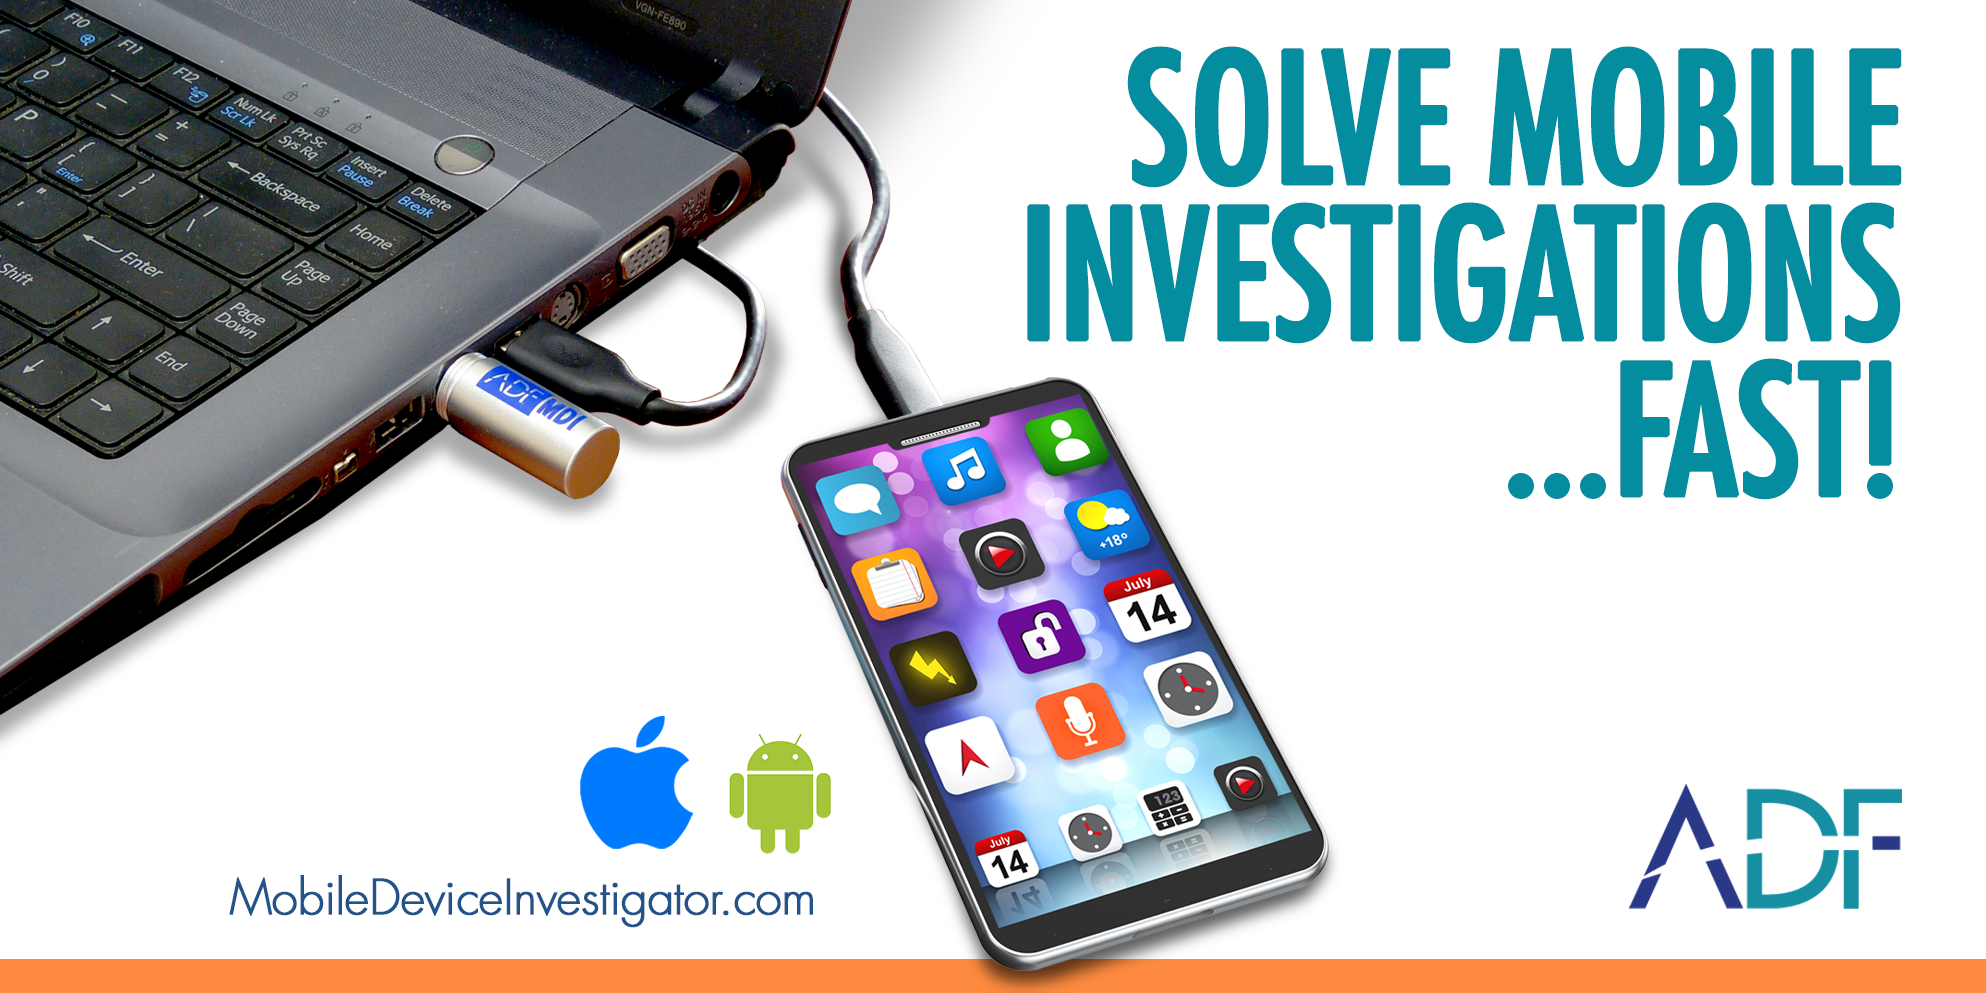 New Mobile Device Investigator® iOS and Android Smartphones